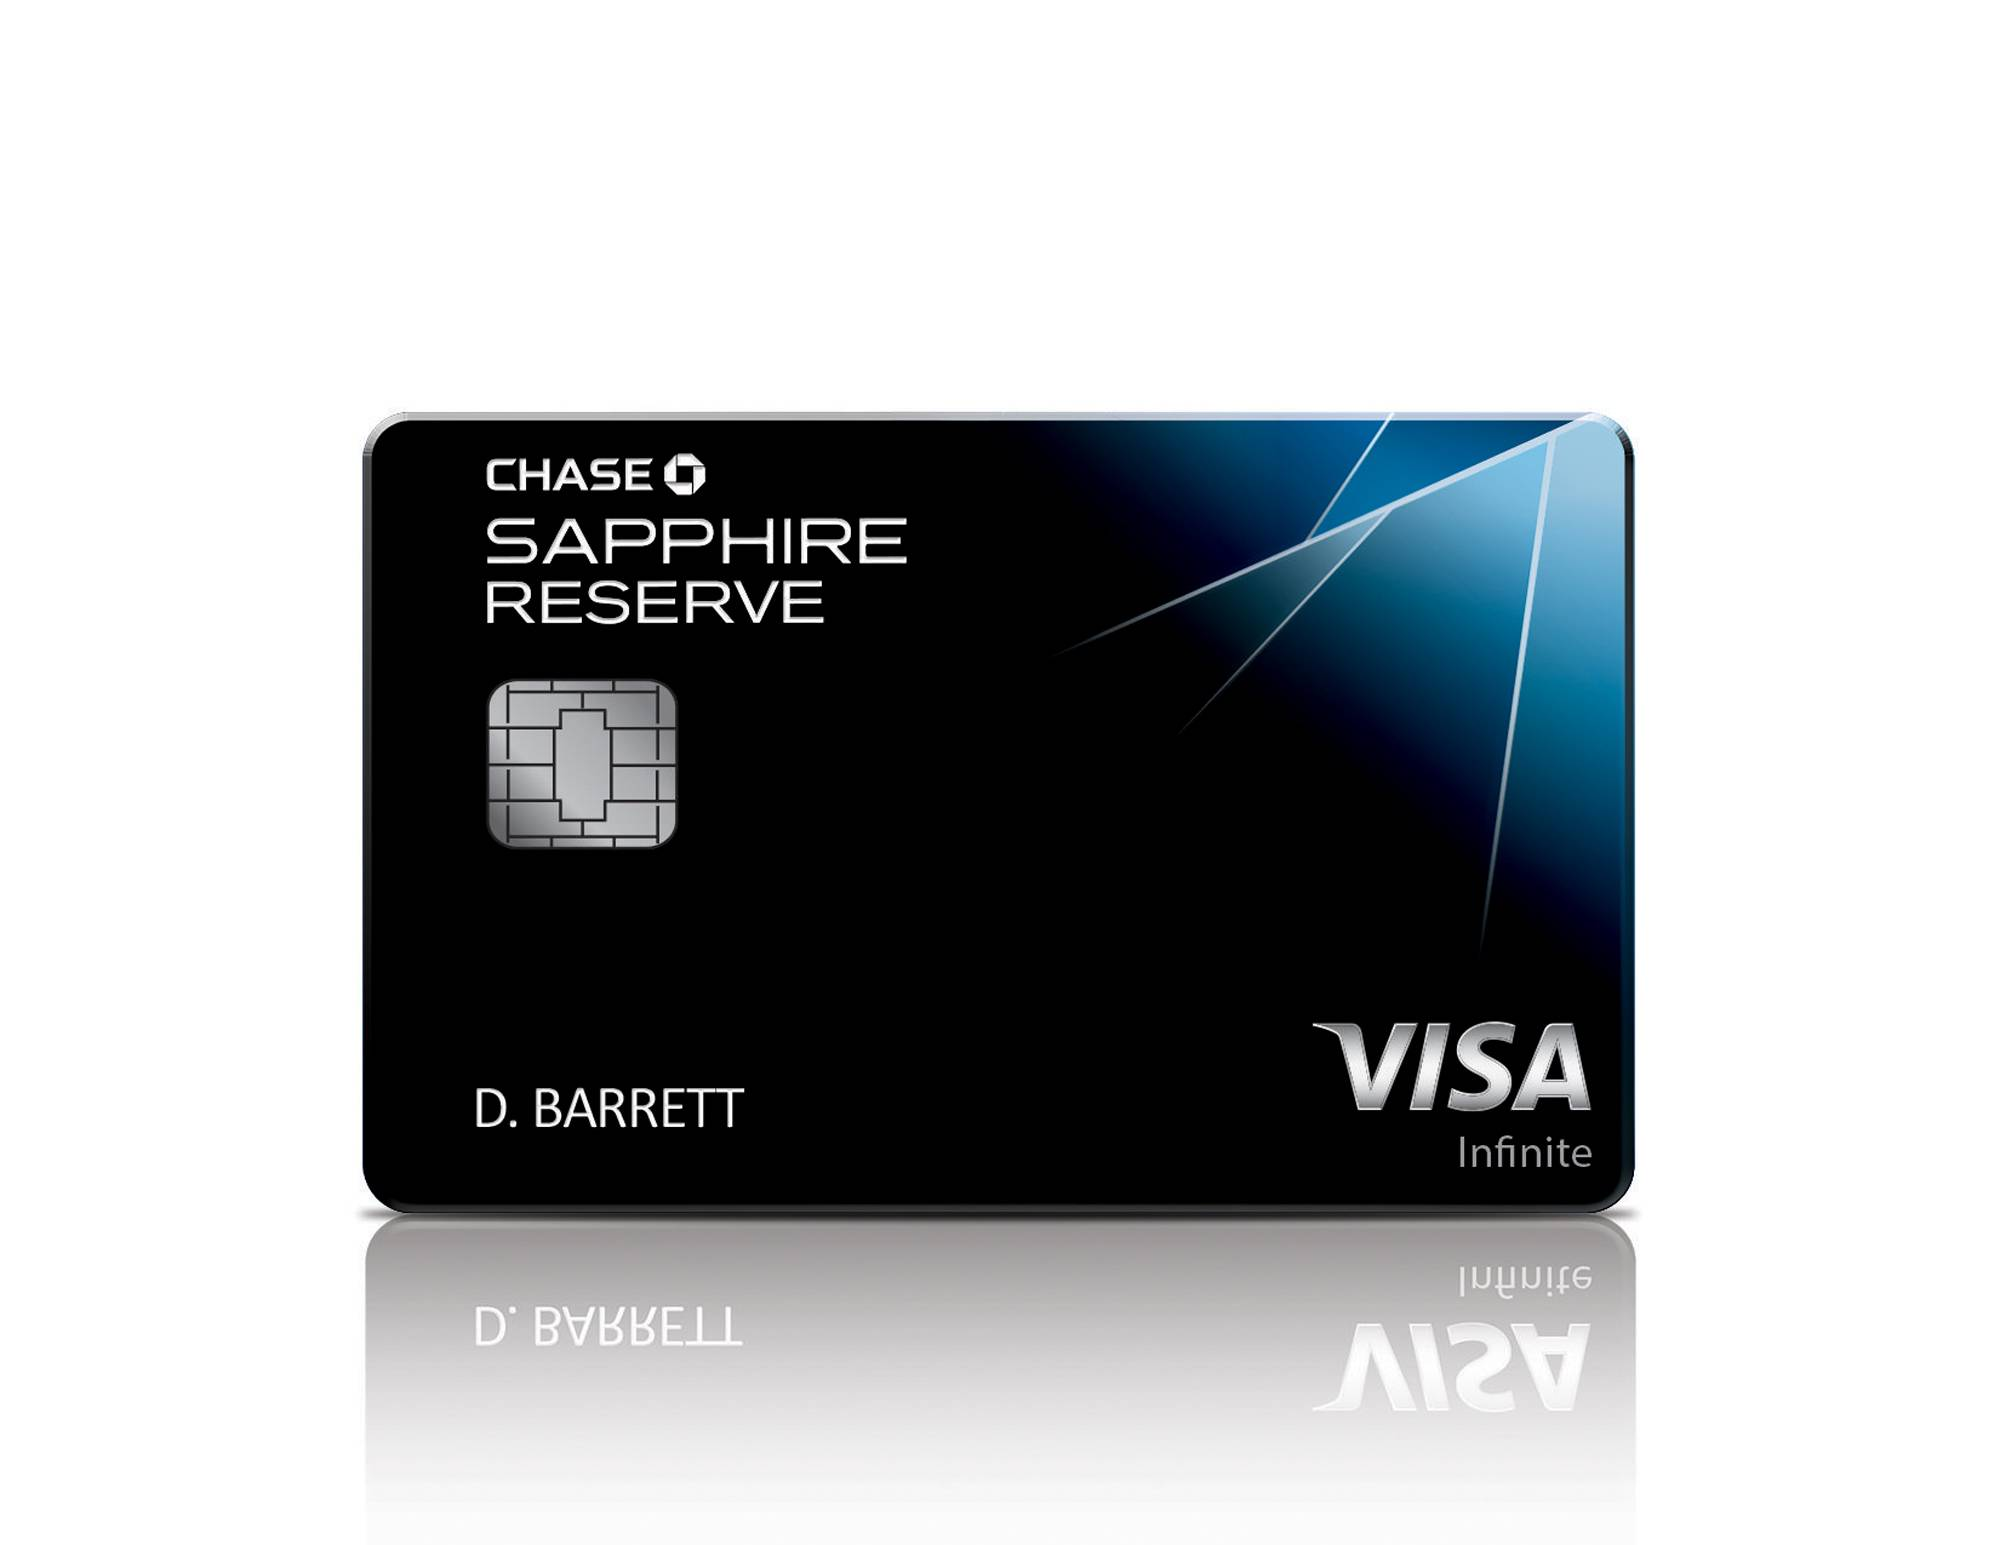 When Chase released its Sapphire Reserve card last year with a signup bonus of 100,000 points, it was such a hit with consumers that the bank temporarily ran out of metal to make the cards. That popularity came with a short-term cost, however: JPMorgan Chase Chief Executive Officer Jamie Dimon said the cards' perks ended up cutting the bank's fourth-quarter profit by up to $300 million.